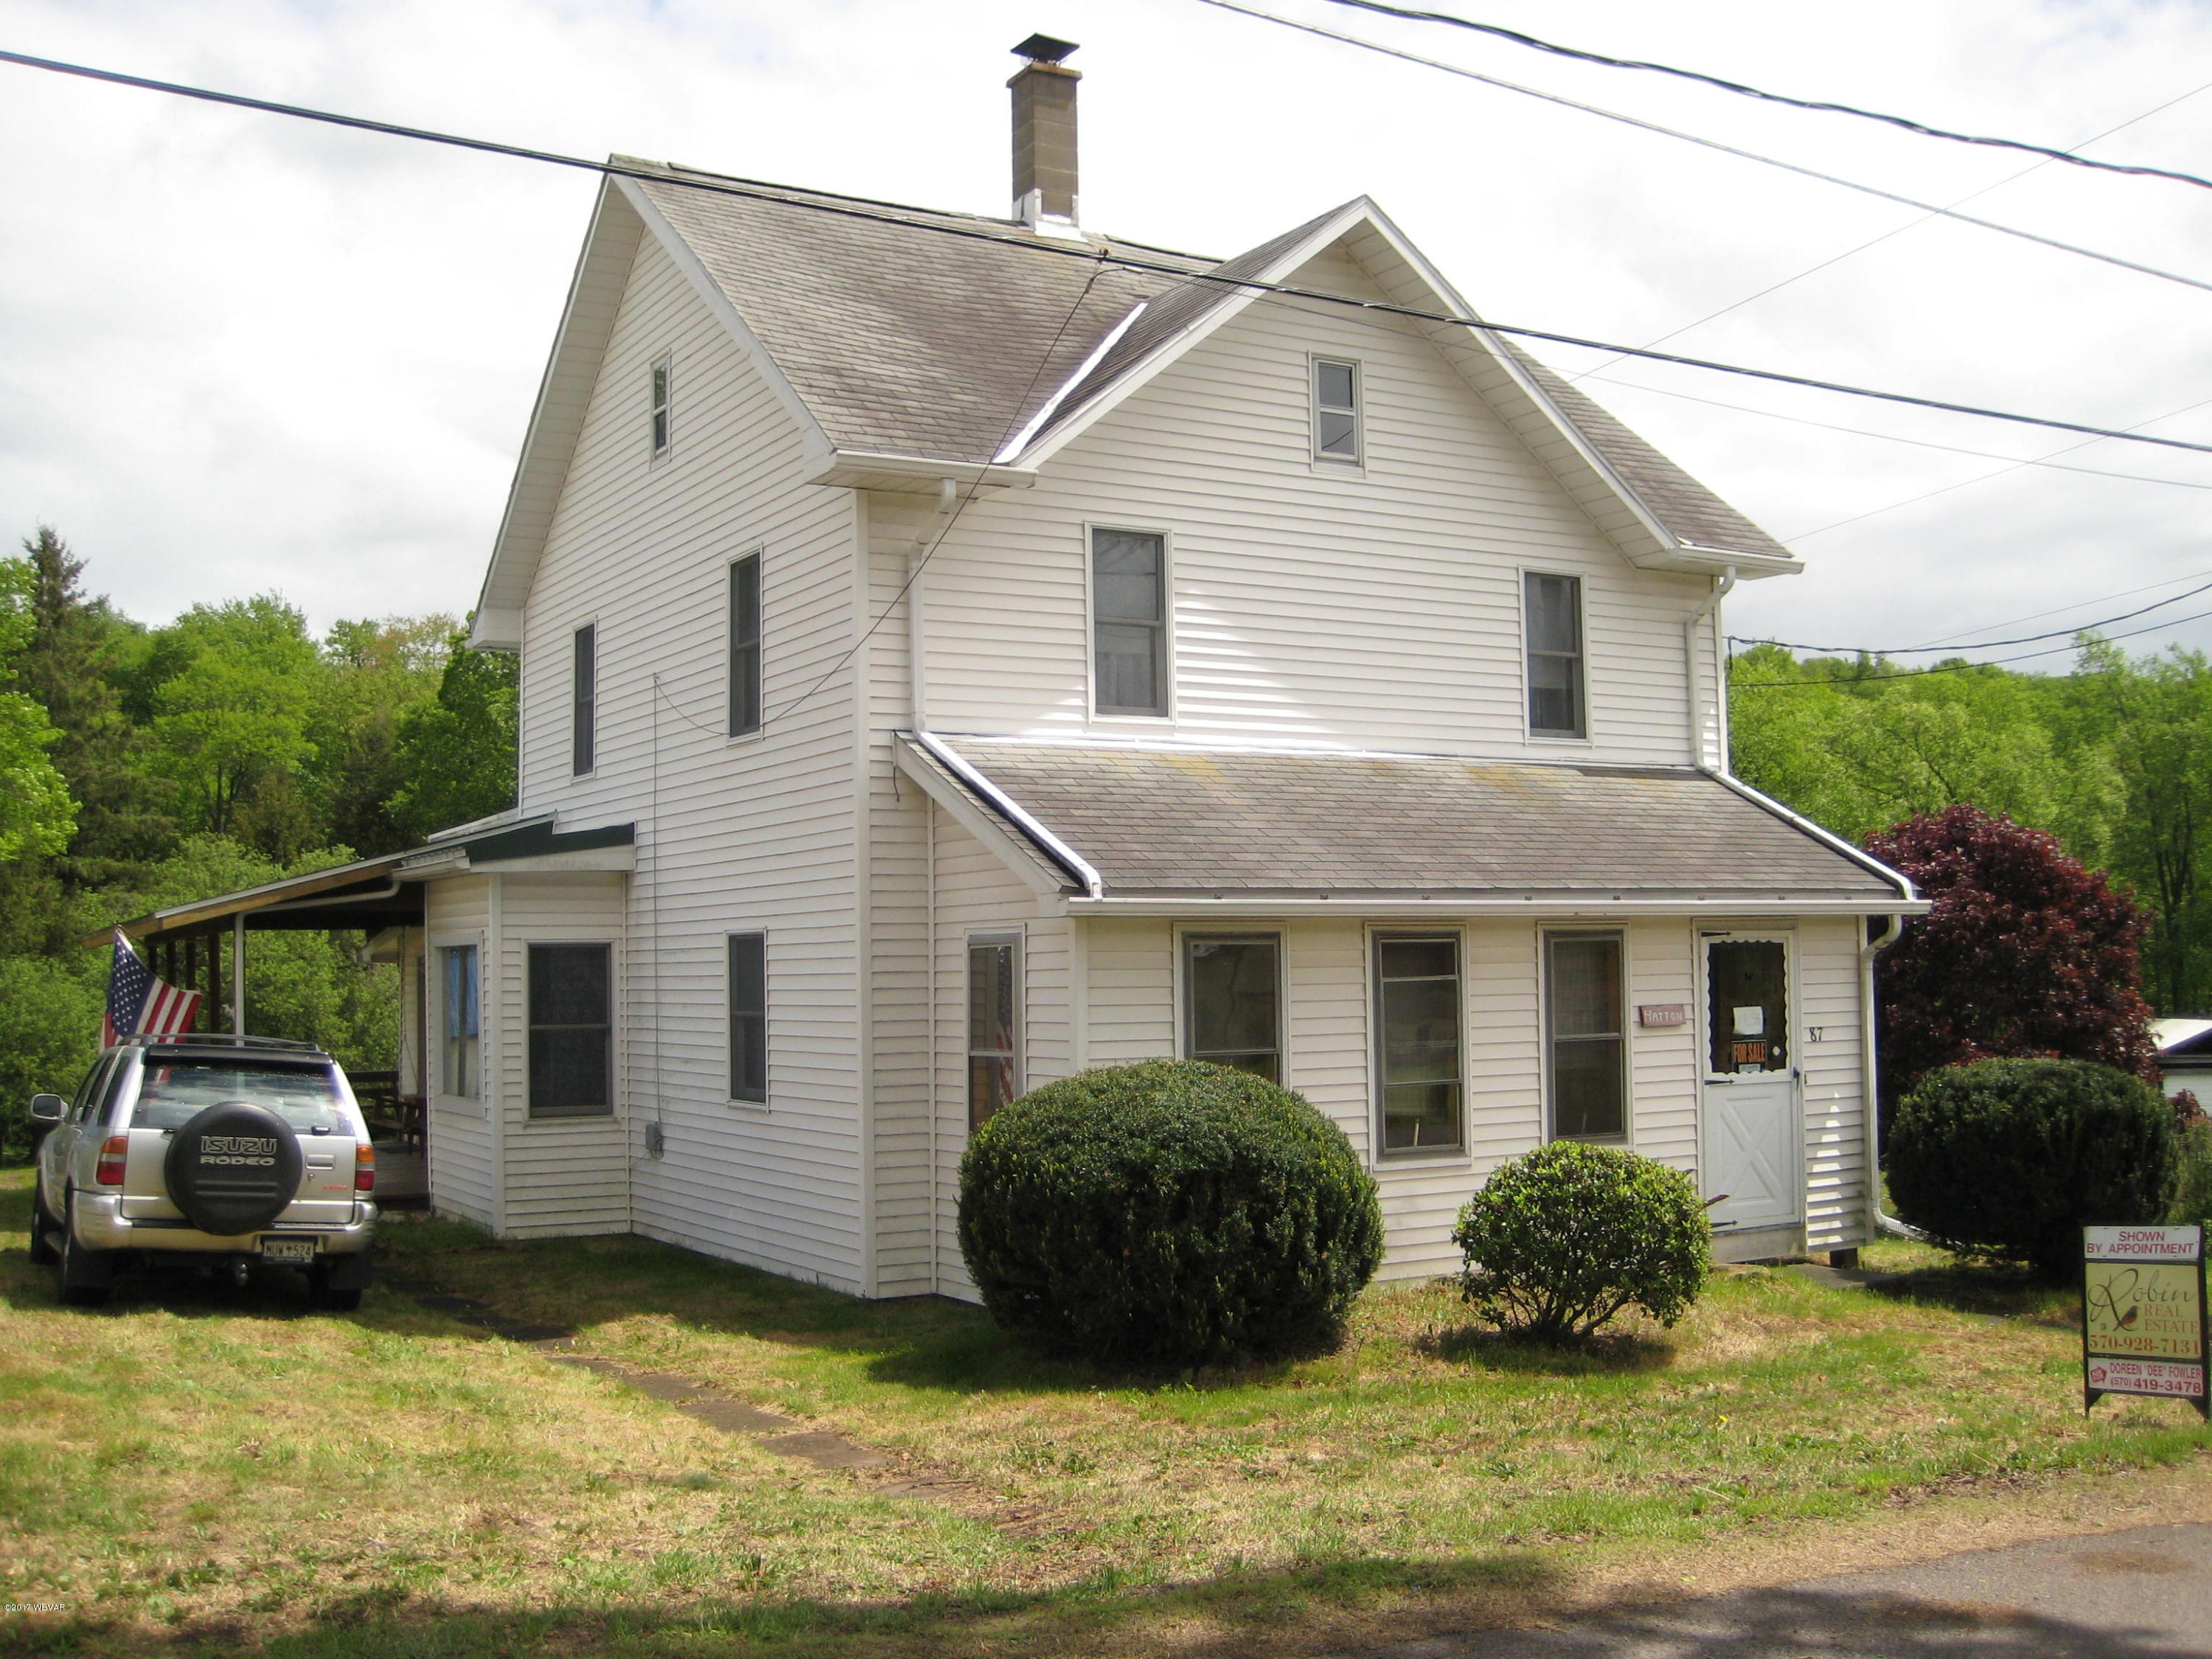 87 JACKSON STREET,Mildred,PA 18632,4 Bedrooms Bedrooms,1 BathroomBathrooms,Cabin/vacation home,JACKSON,WB-80938